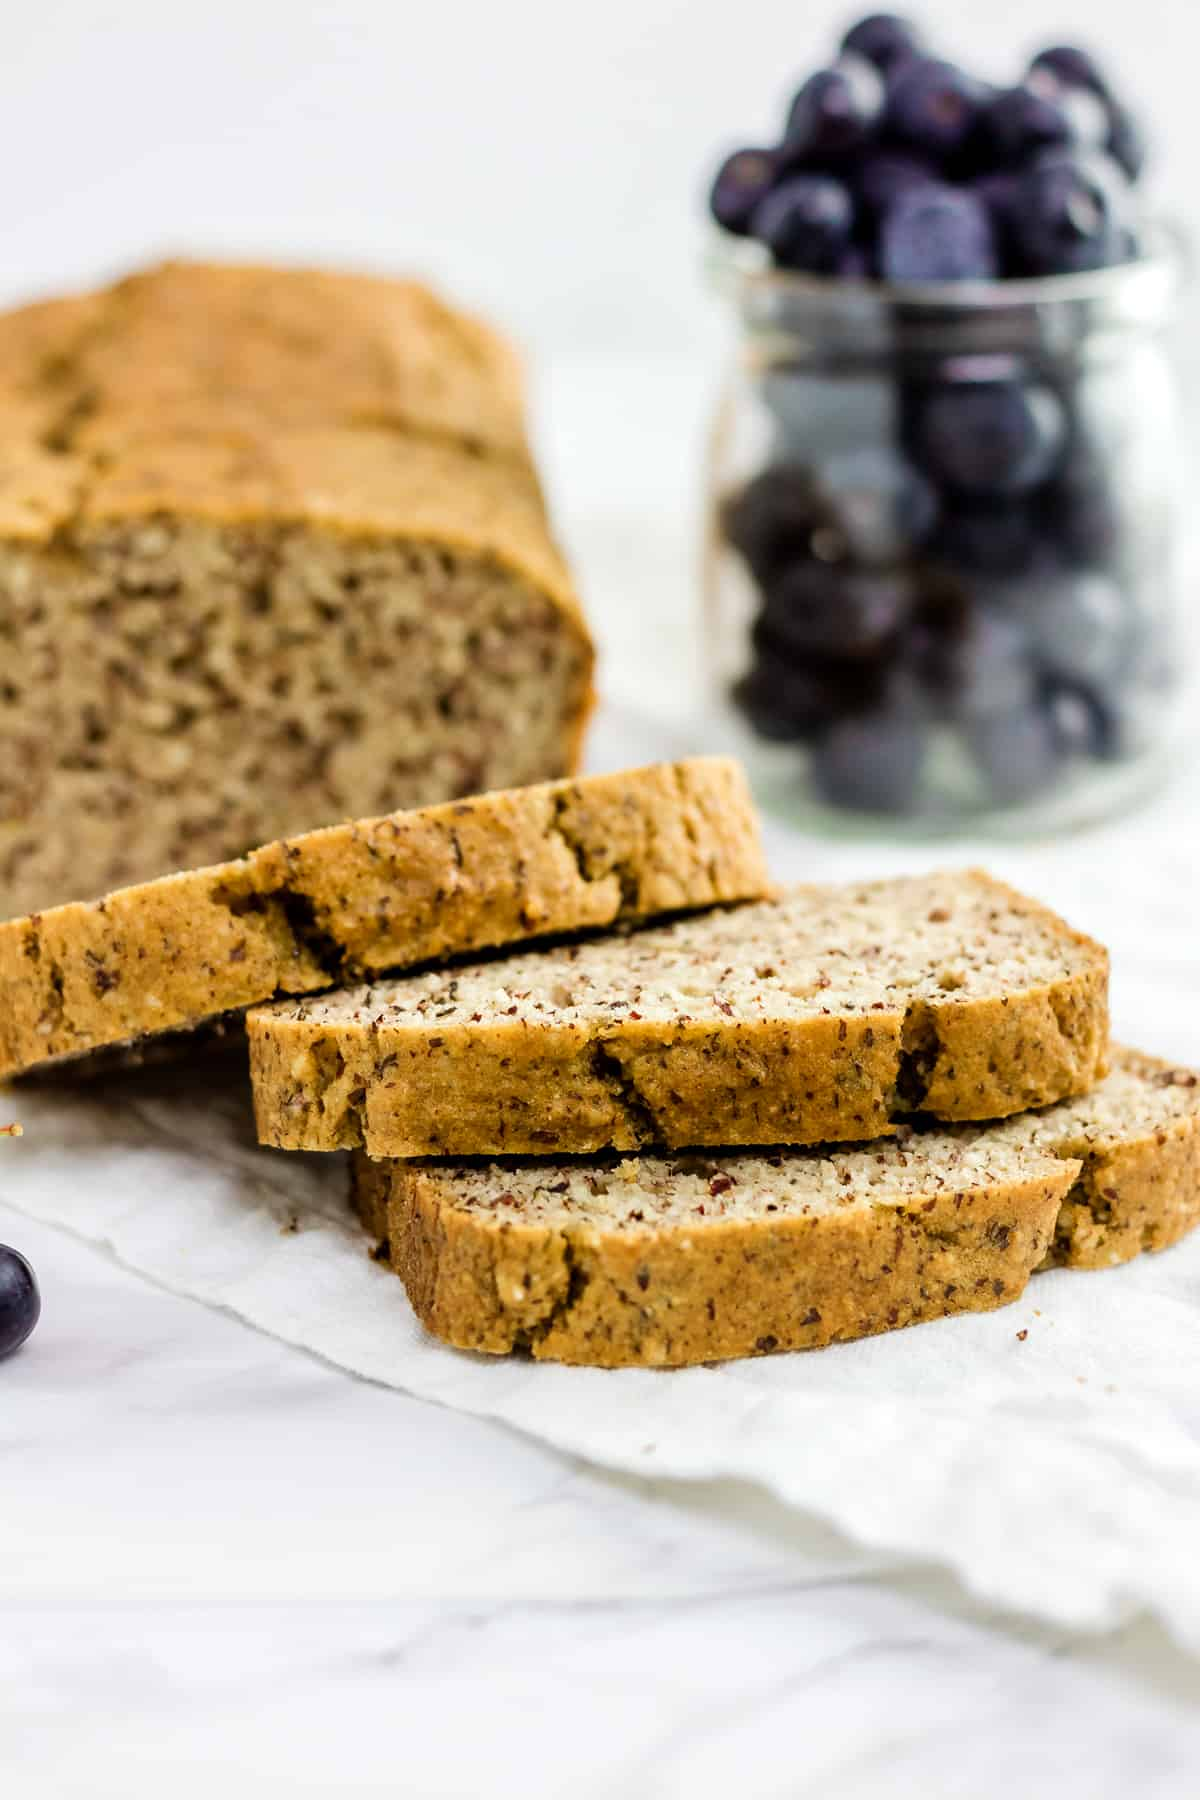 The BEST Paleo Sandwich Bread (gluten free, grain free, yeast free, low carb)